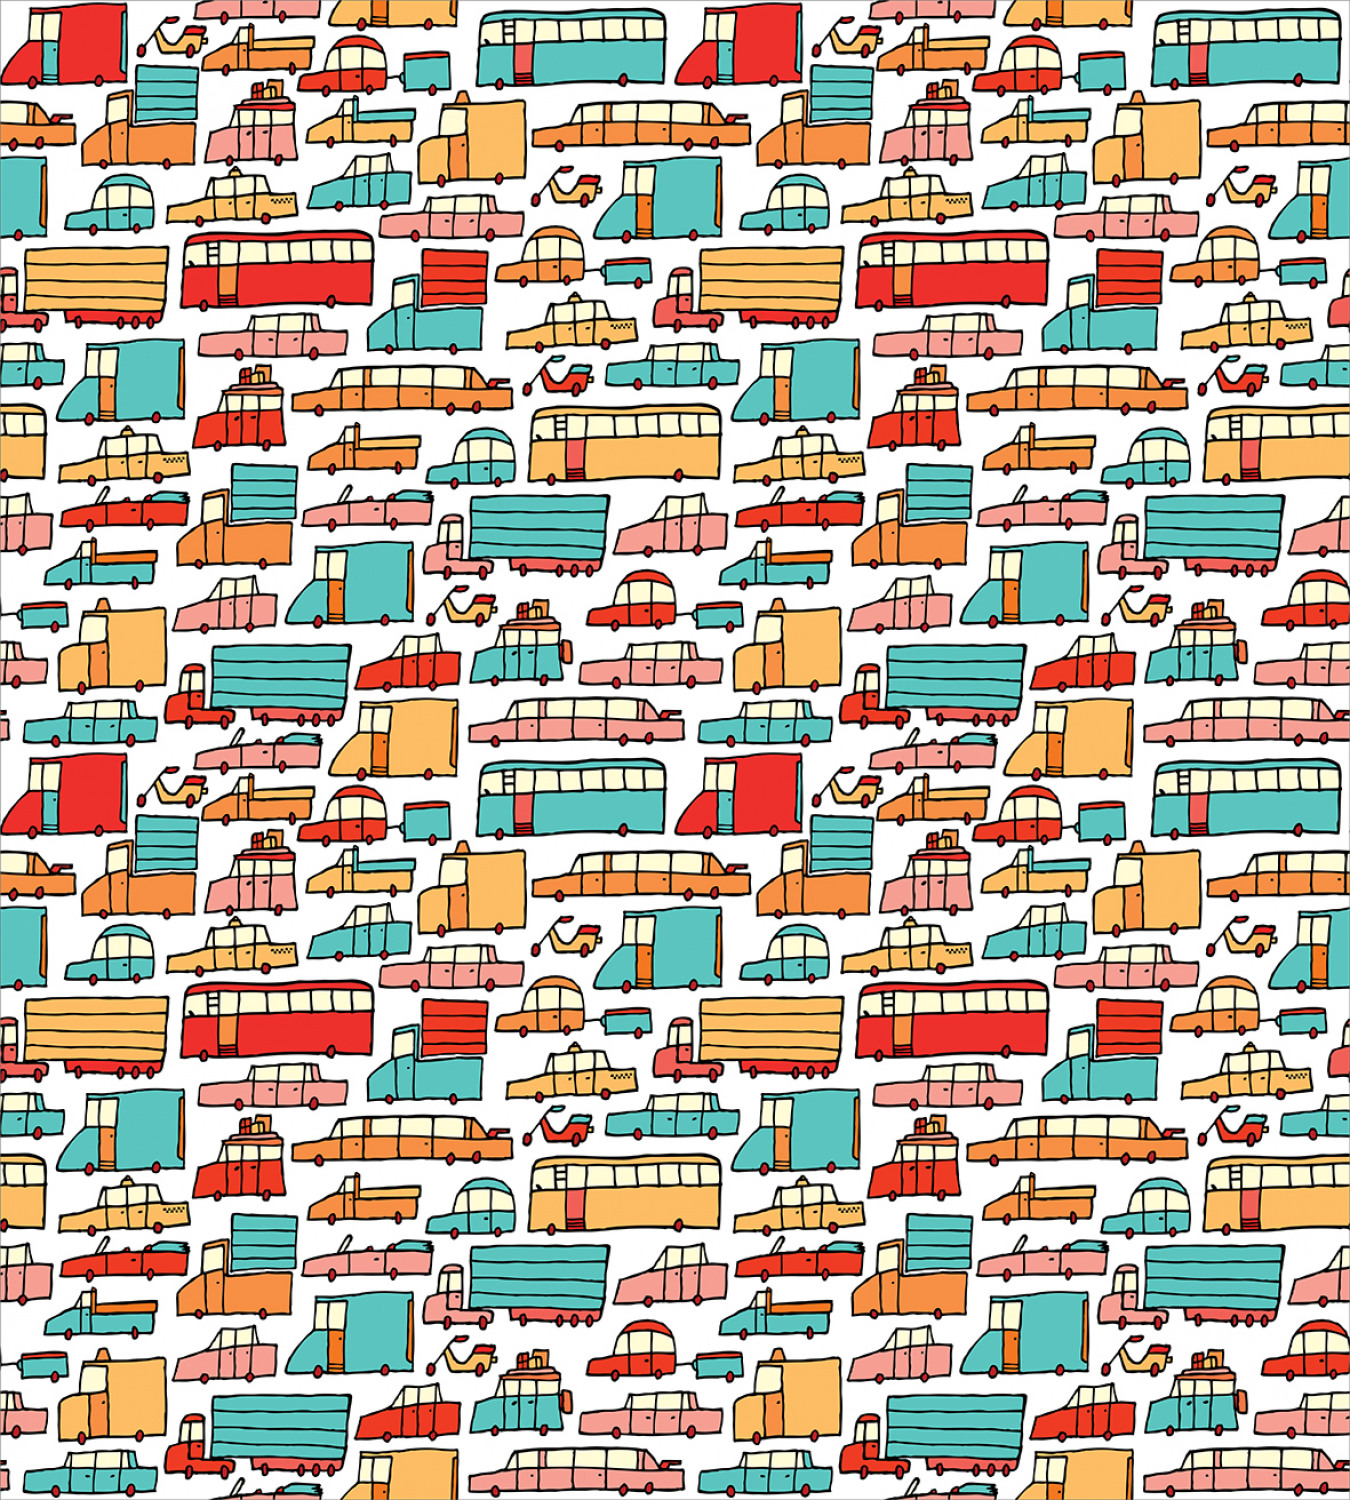 Colorful-Cars-Duvet-Cover-Set-Twin-Queen-King-Sizes-with-Pillow-Shams-Bedding miniature 56